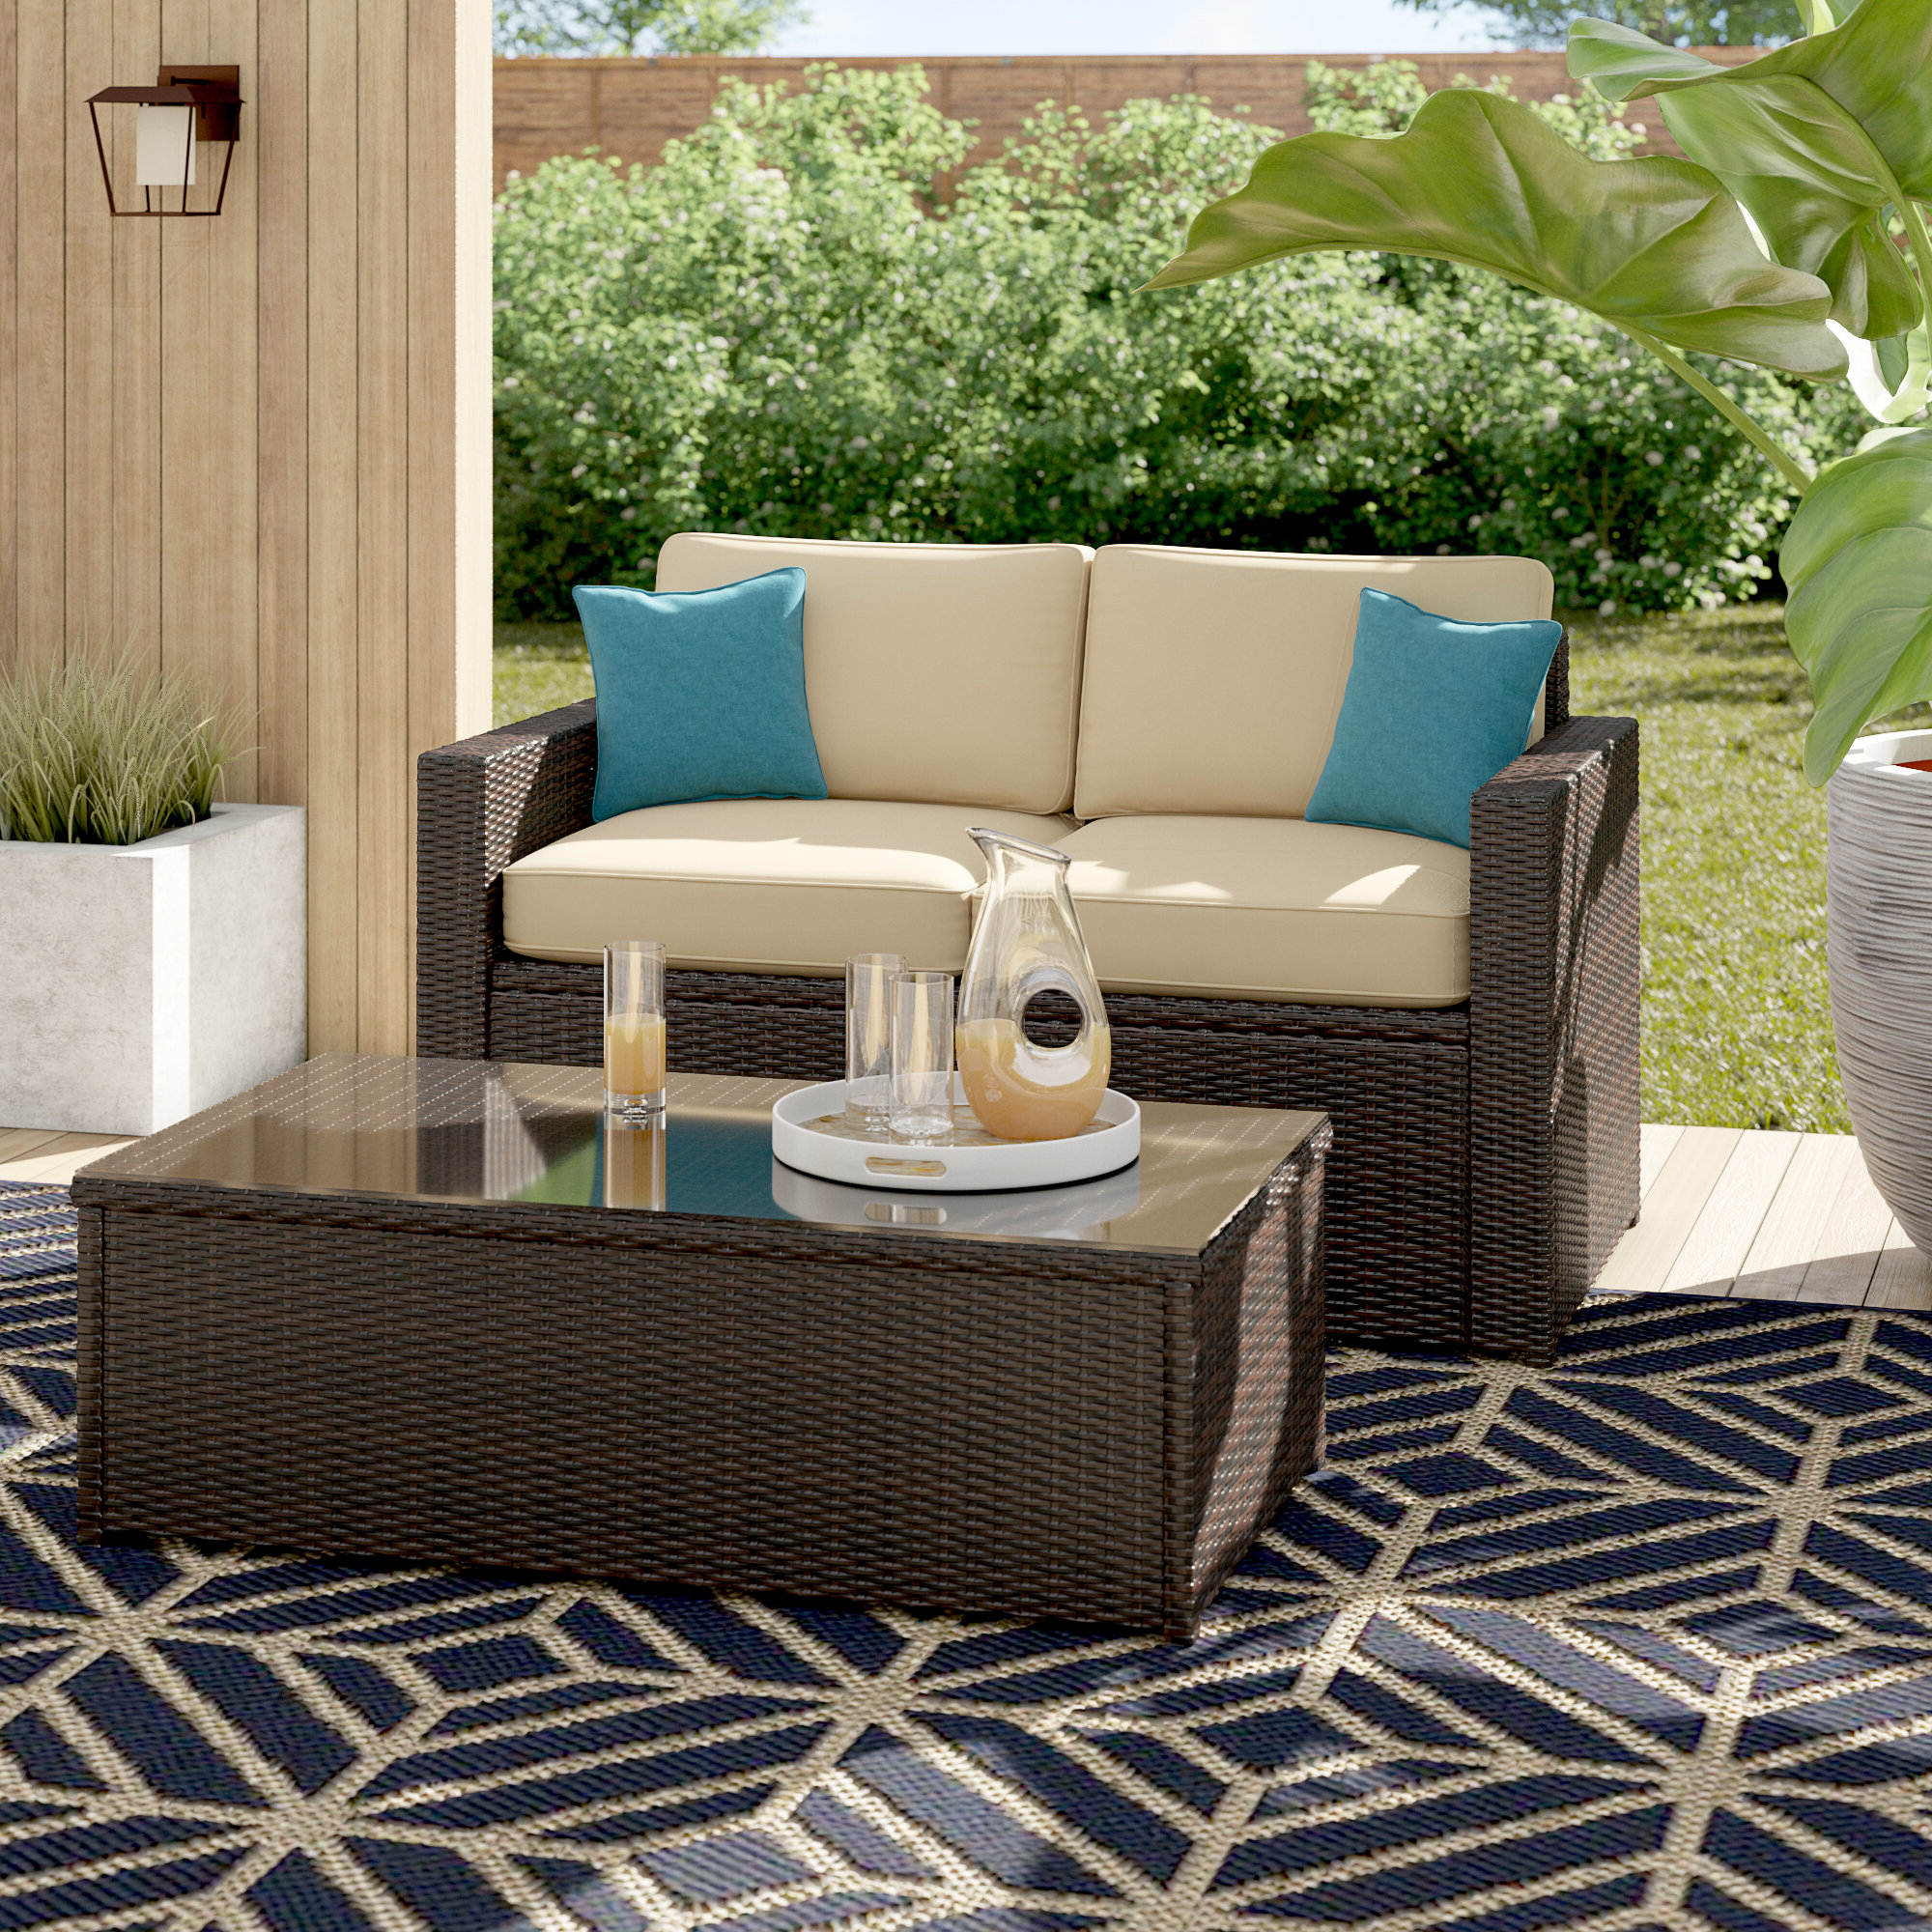 Best And Newest Belton Patio Sofas With Cushions Intended For Belton 2 Piece Rattan Sofa Seating Group With Cushions (View 5 of 25)